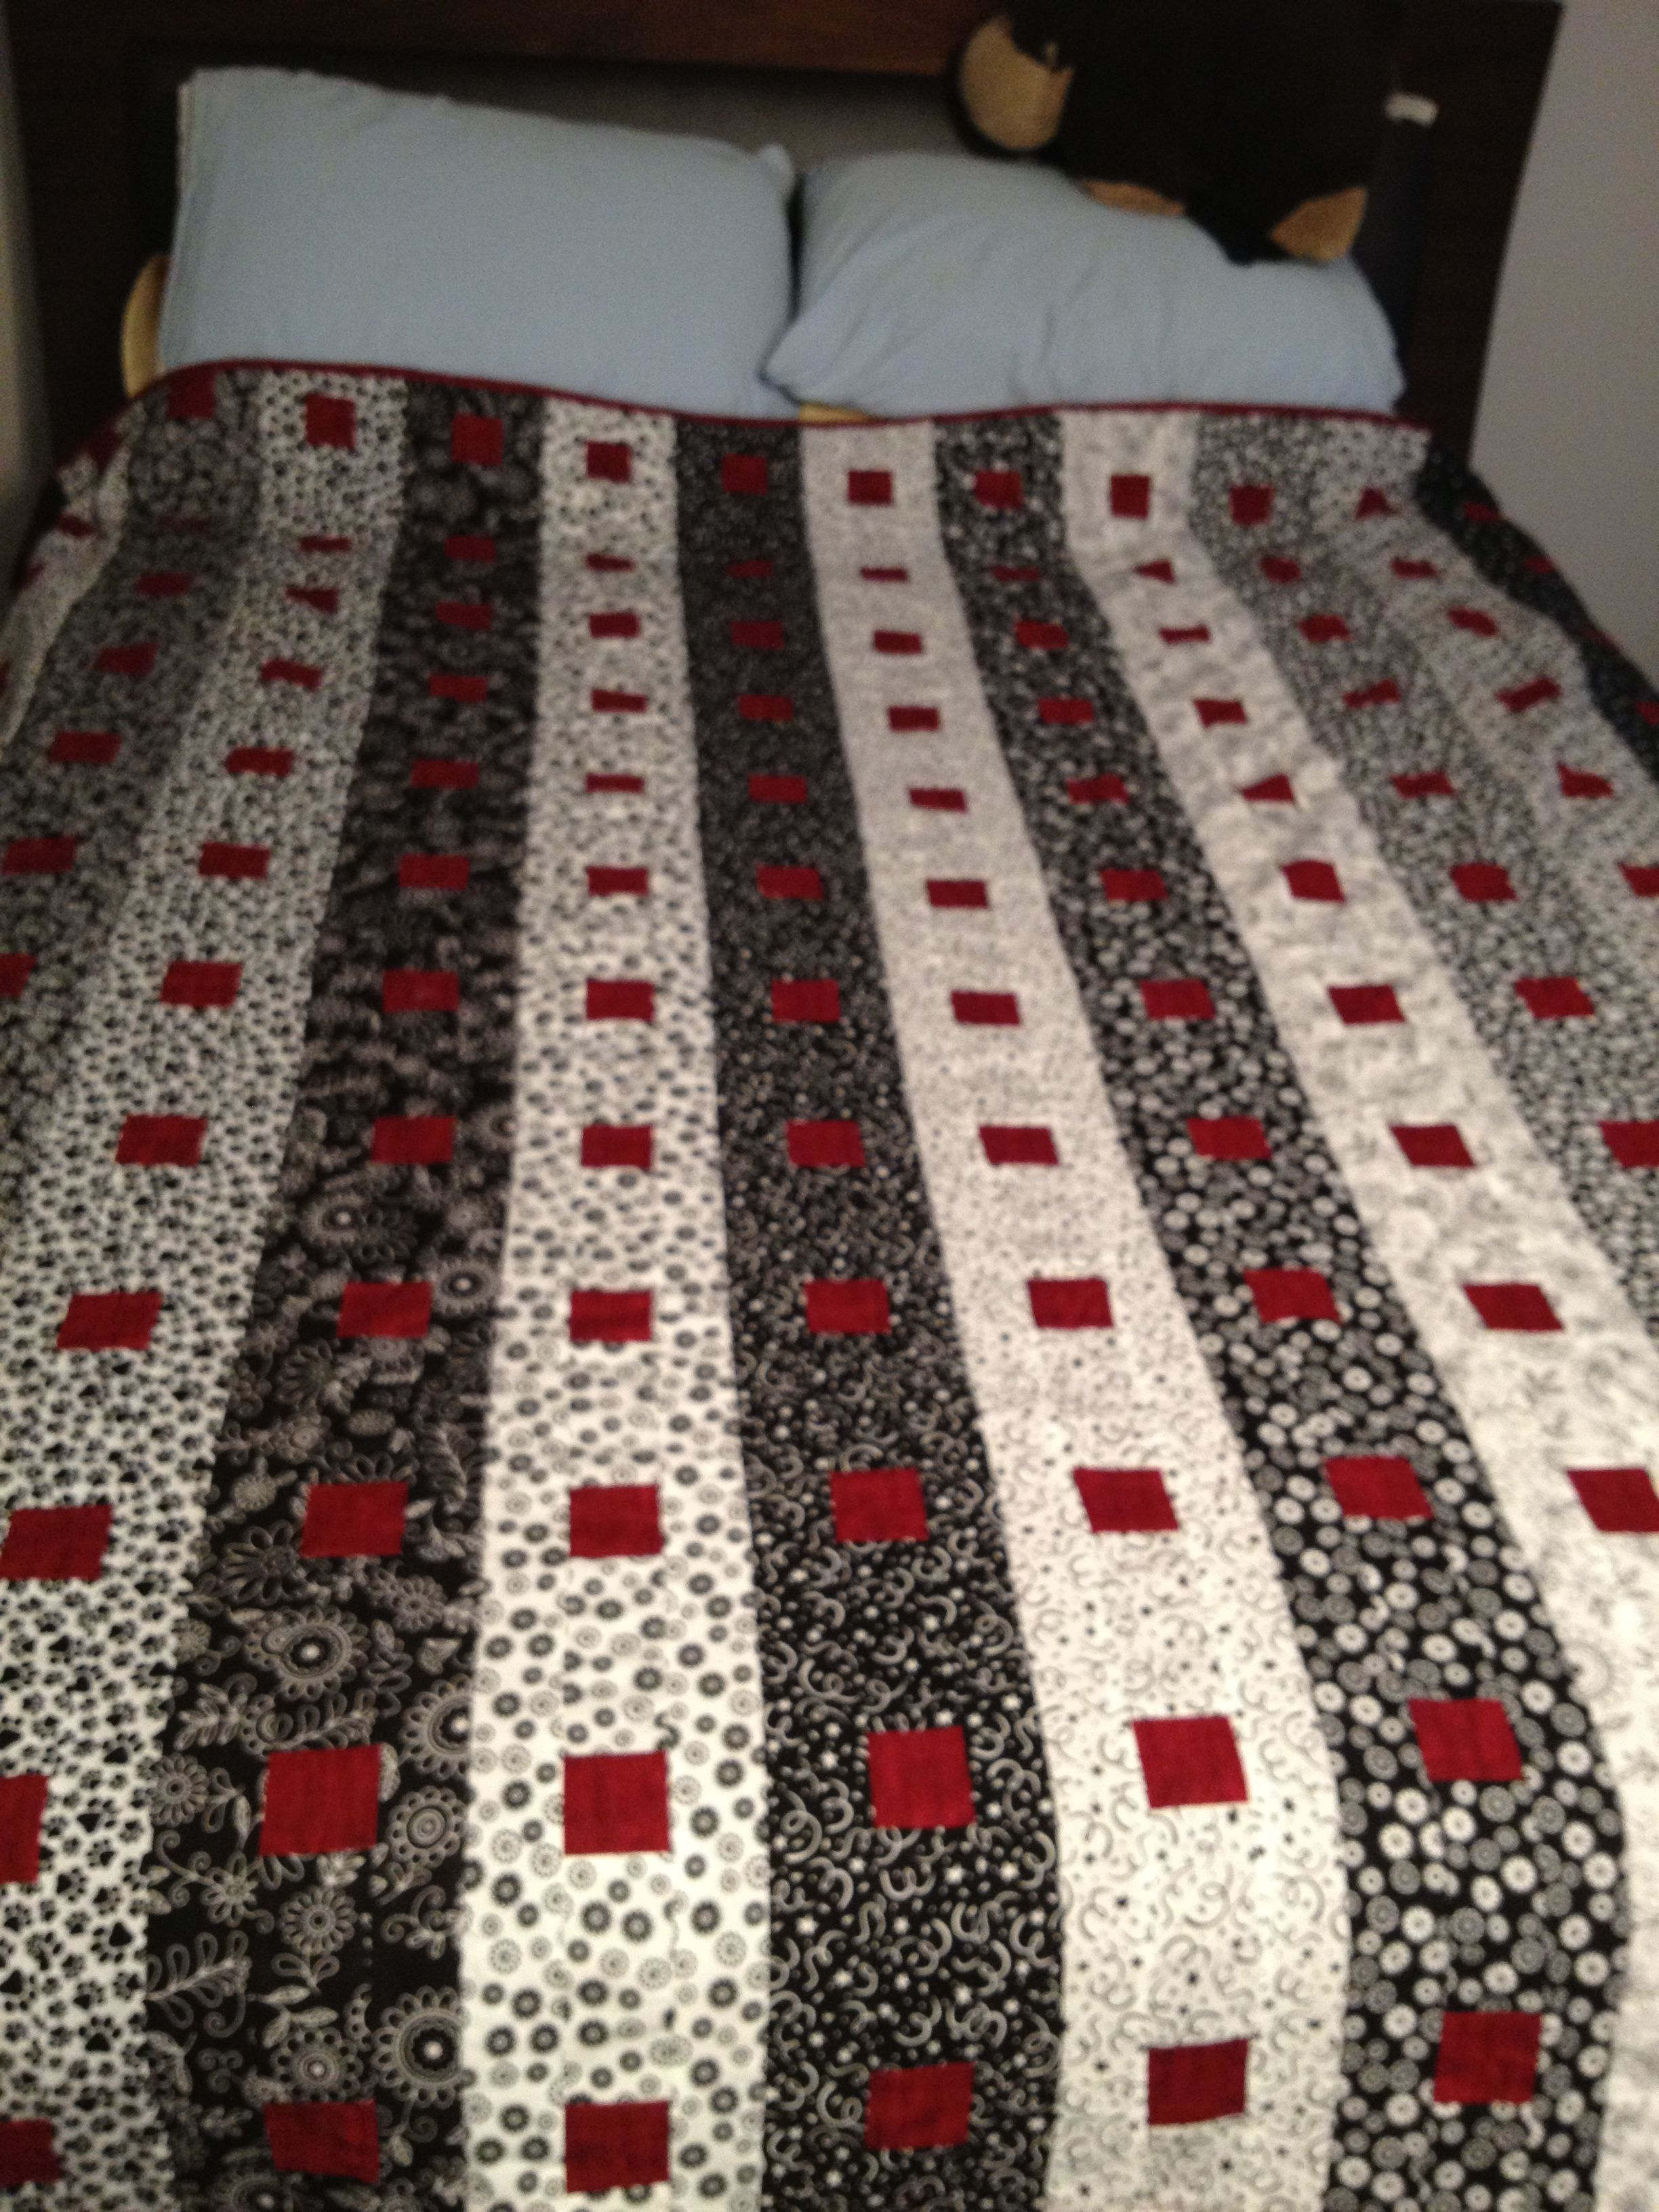 Carolyn - Column quilt - FINALLY DONE!